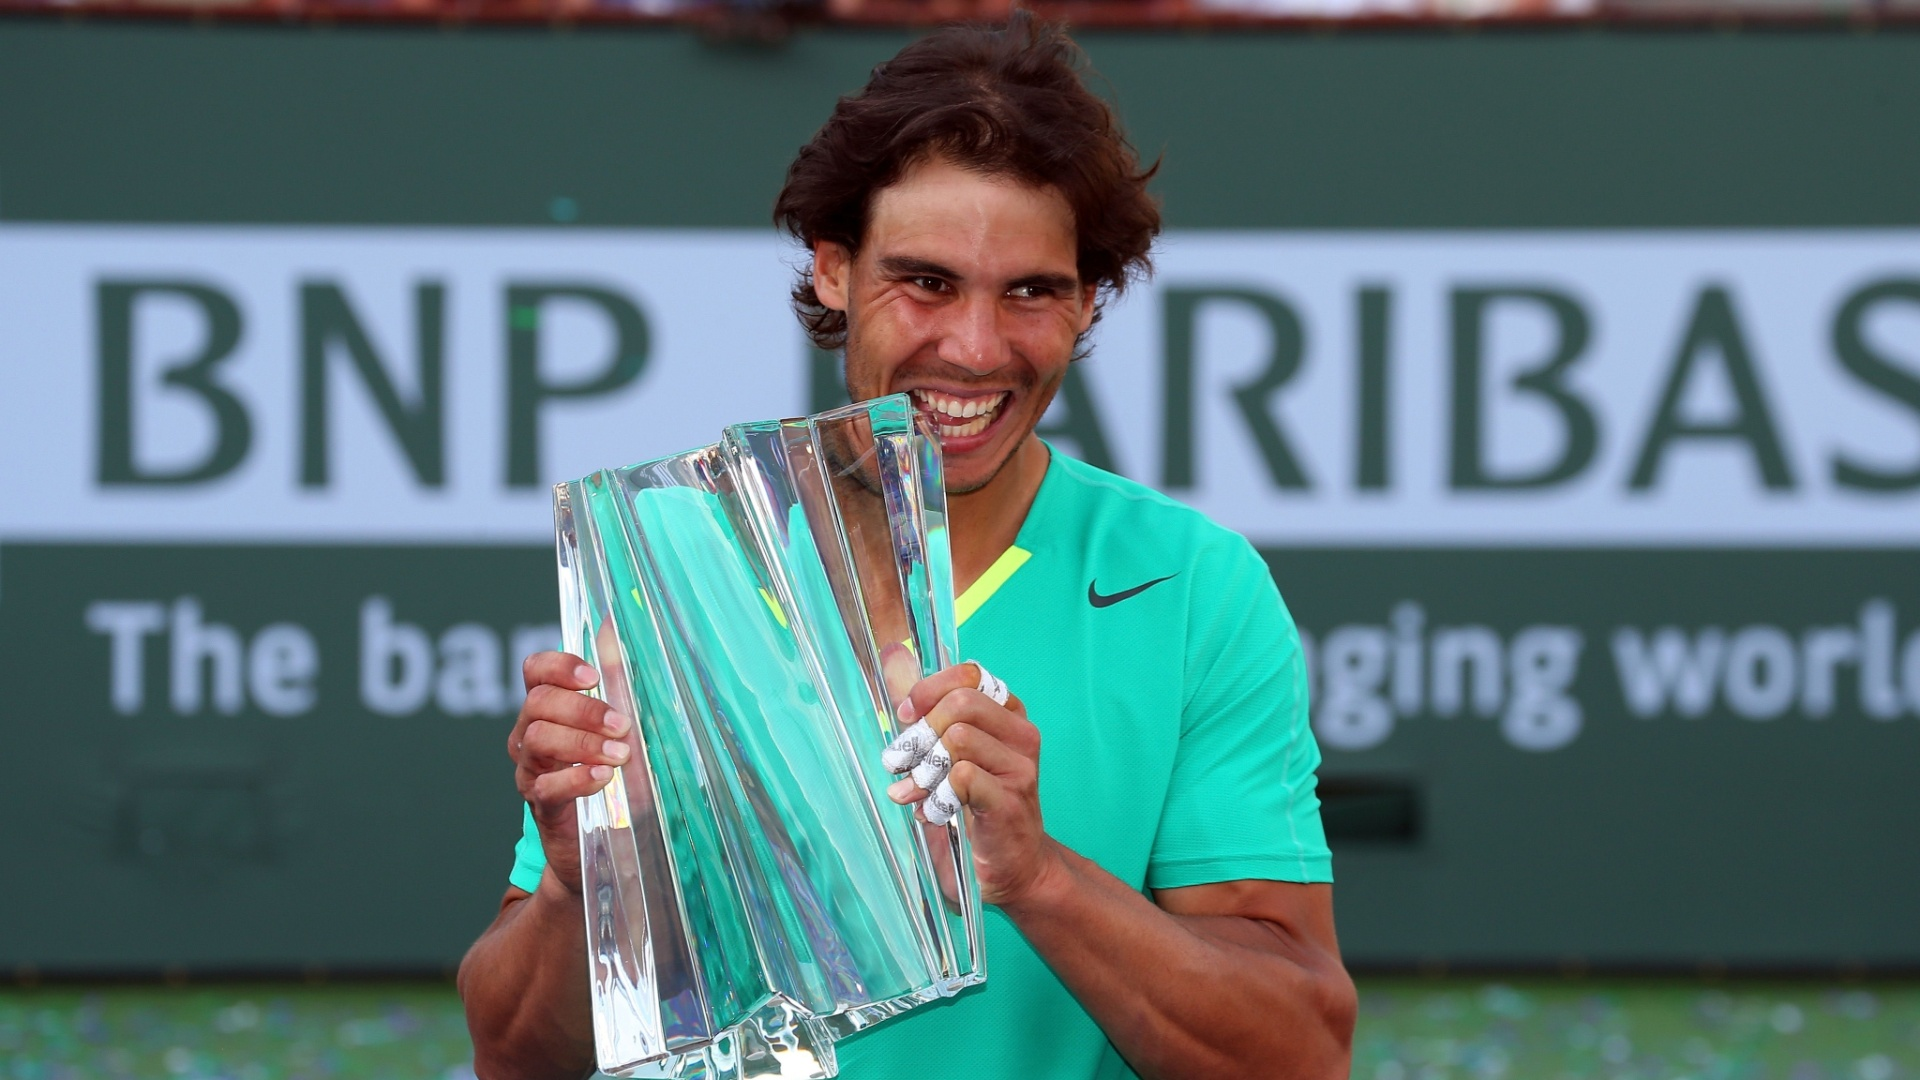 17.mar.2013 - Nadal moder o troféu conquistado em Indian Wells